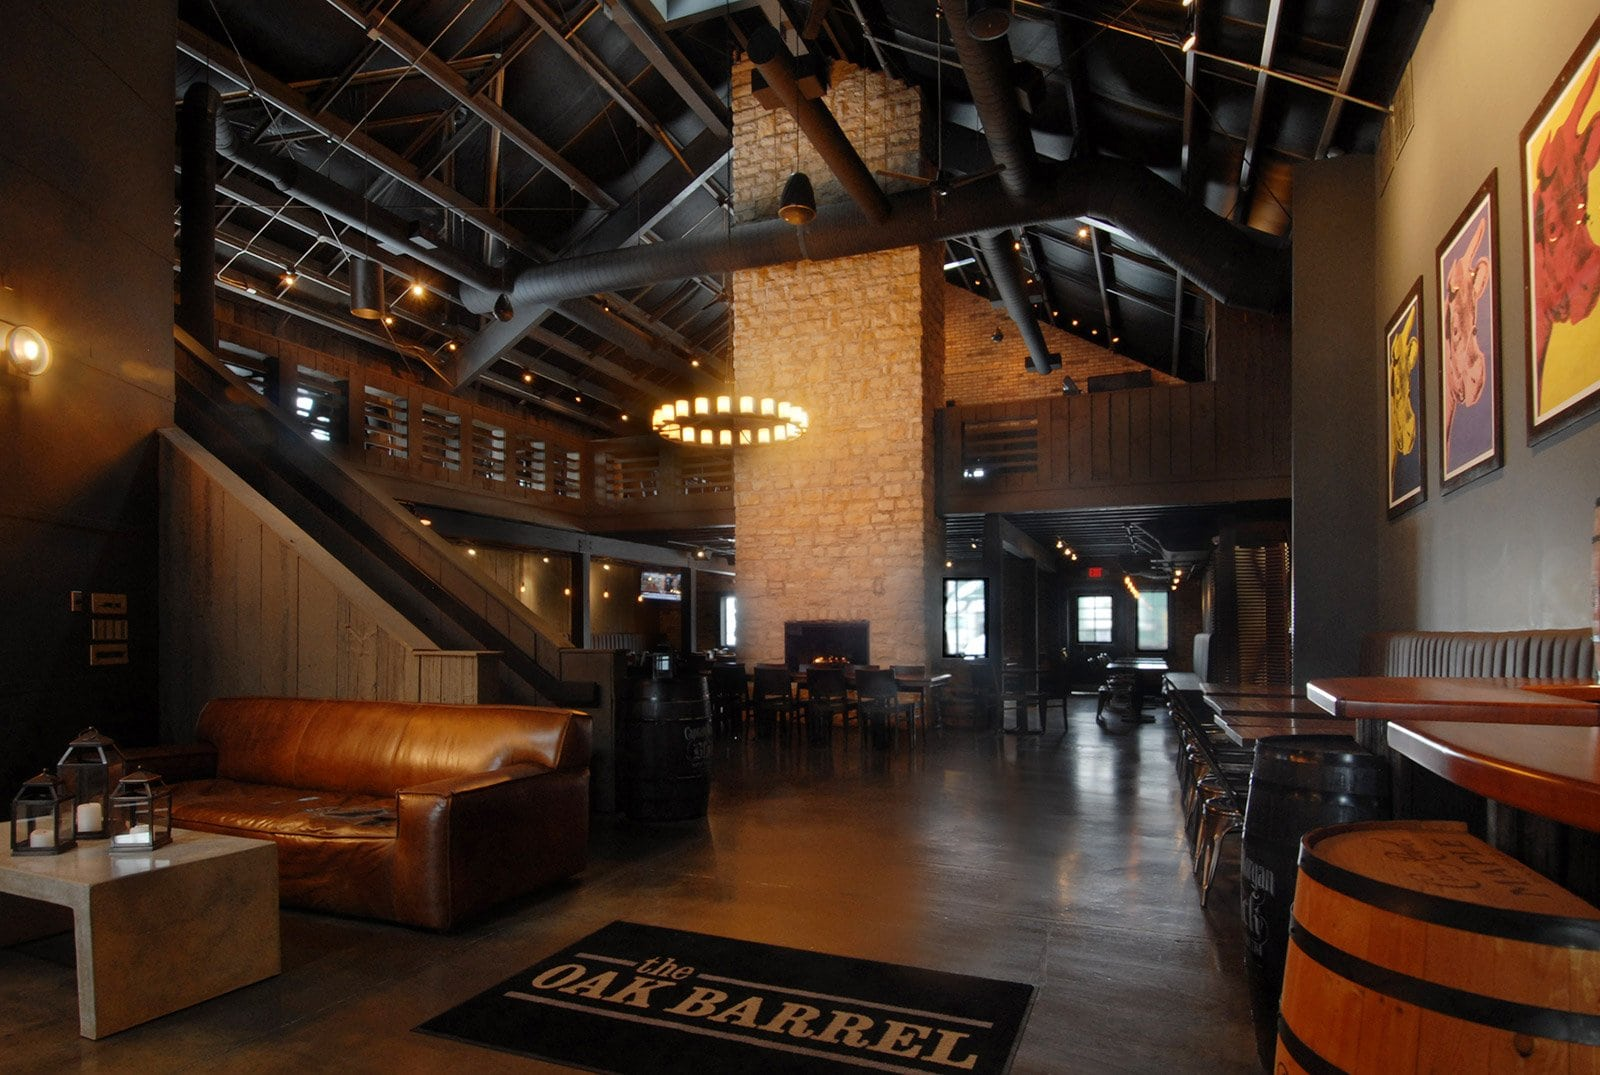 The Oak Barrel Restaurant